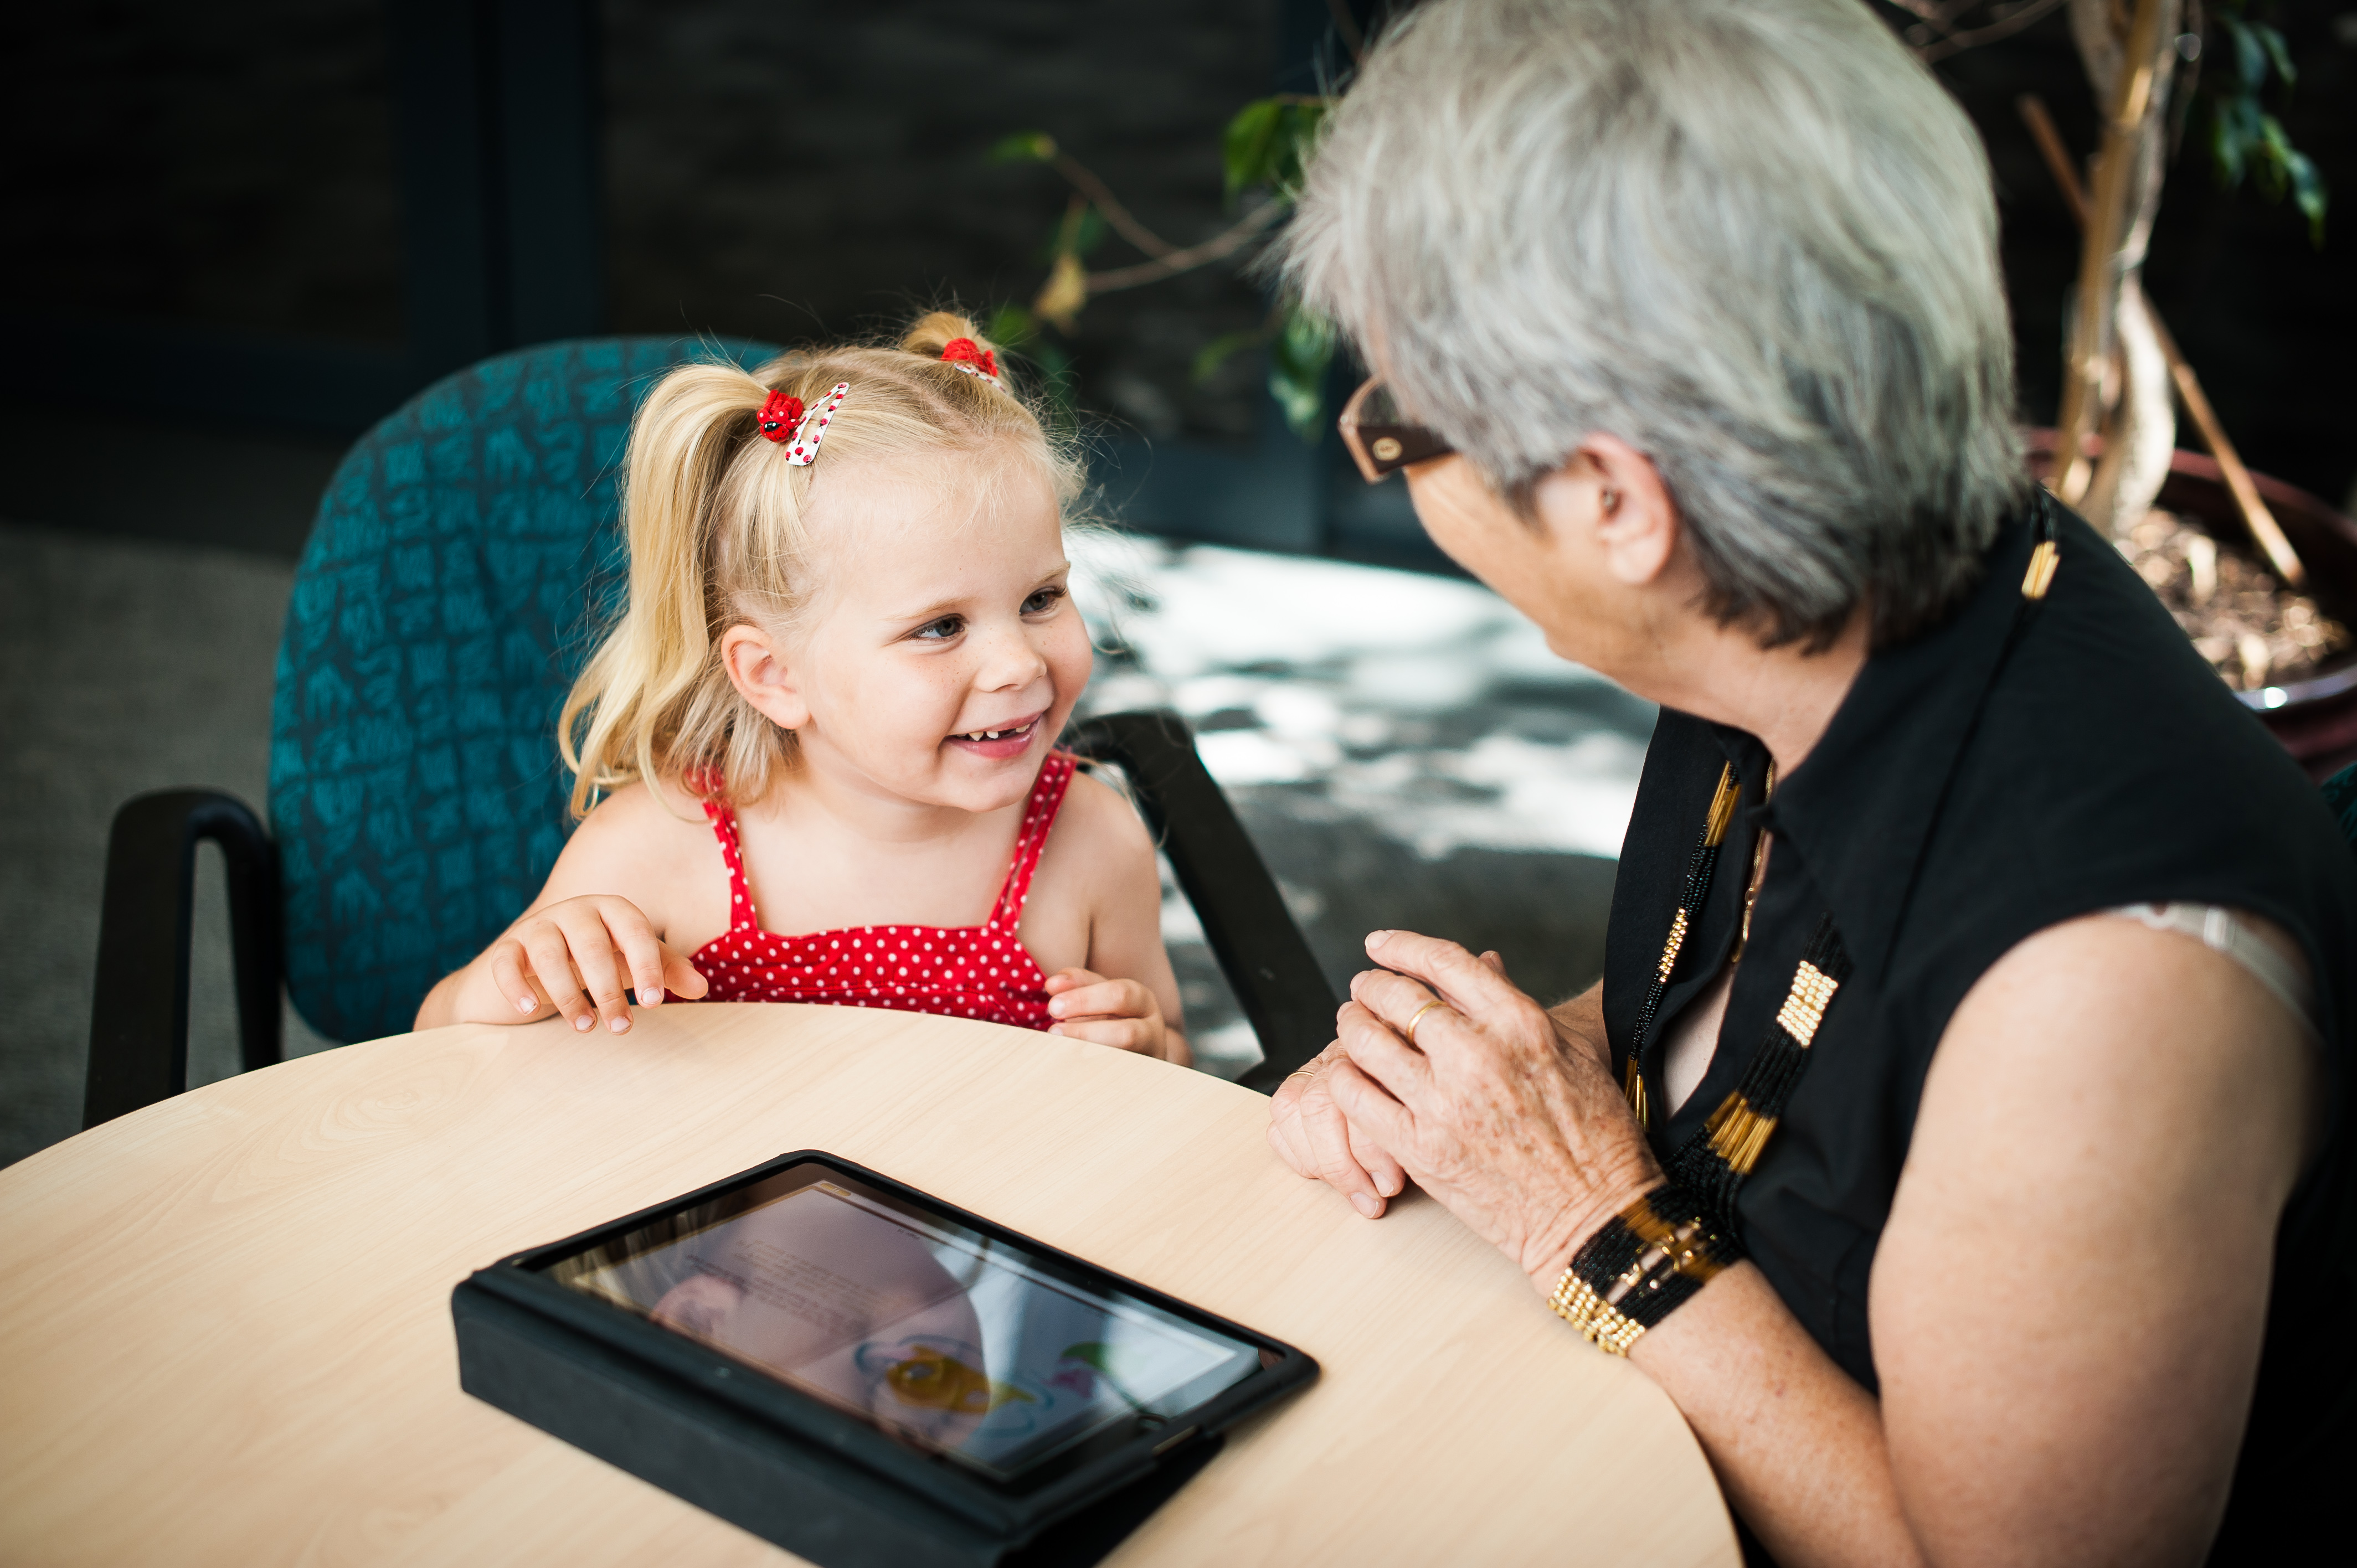 smiling young girl in red dress looking at an older lady in side profile wearing glasses with a tablet on the table